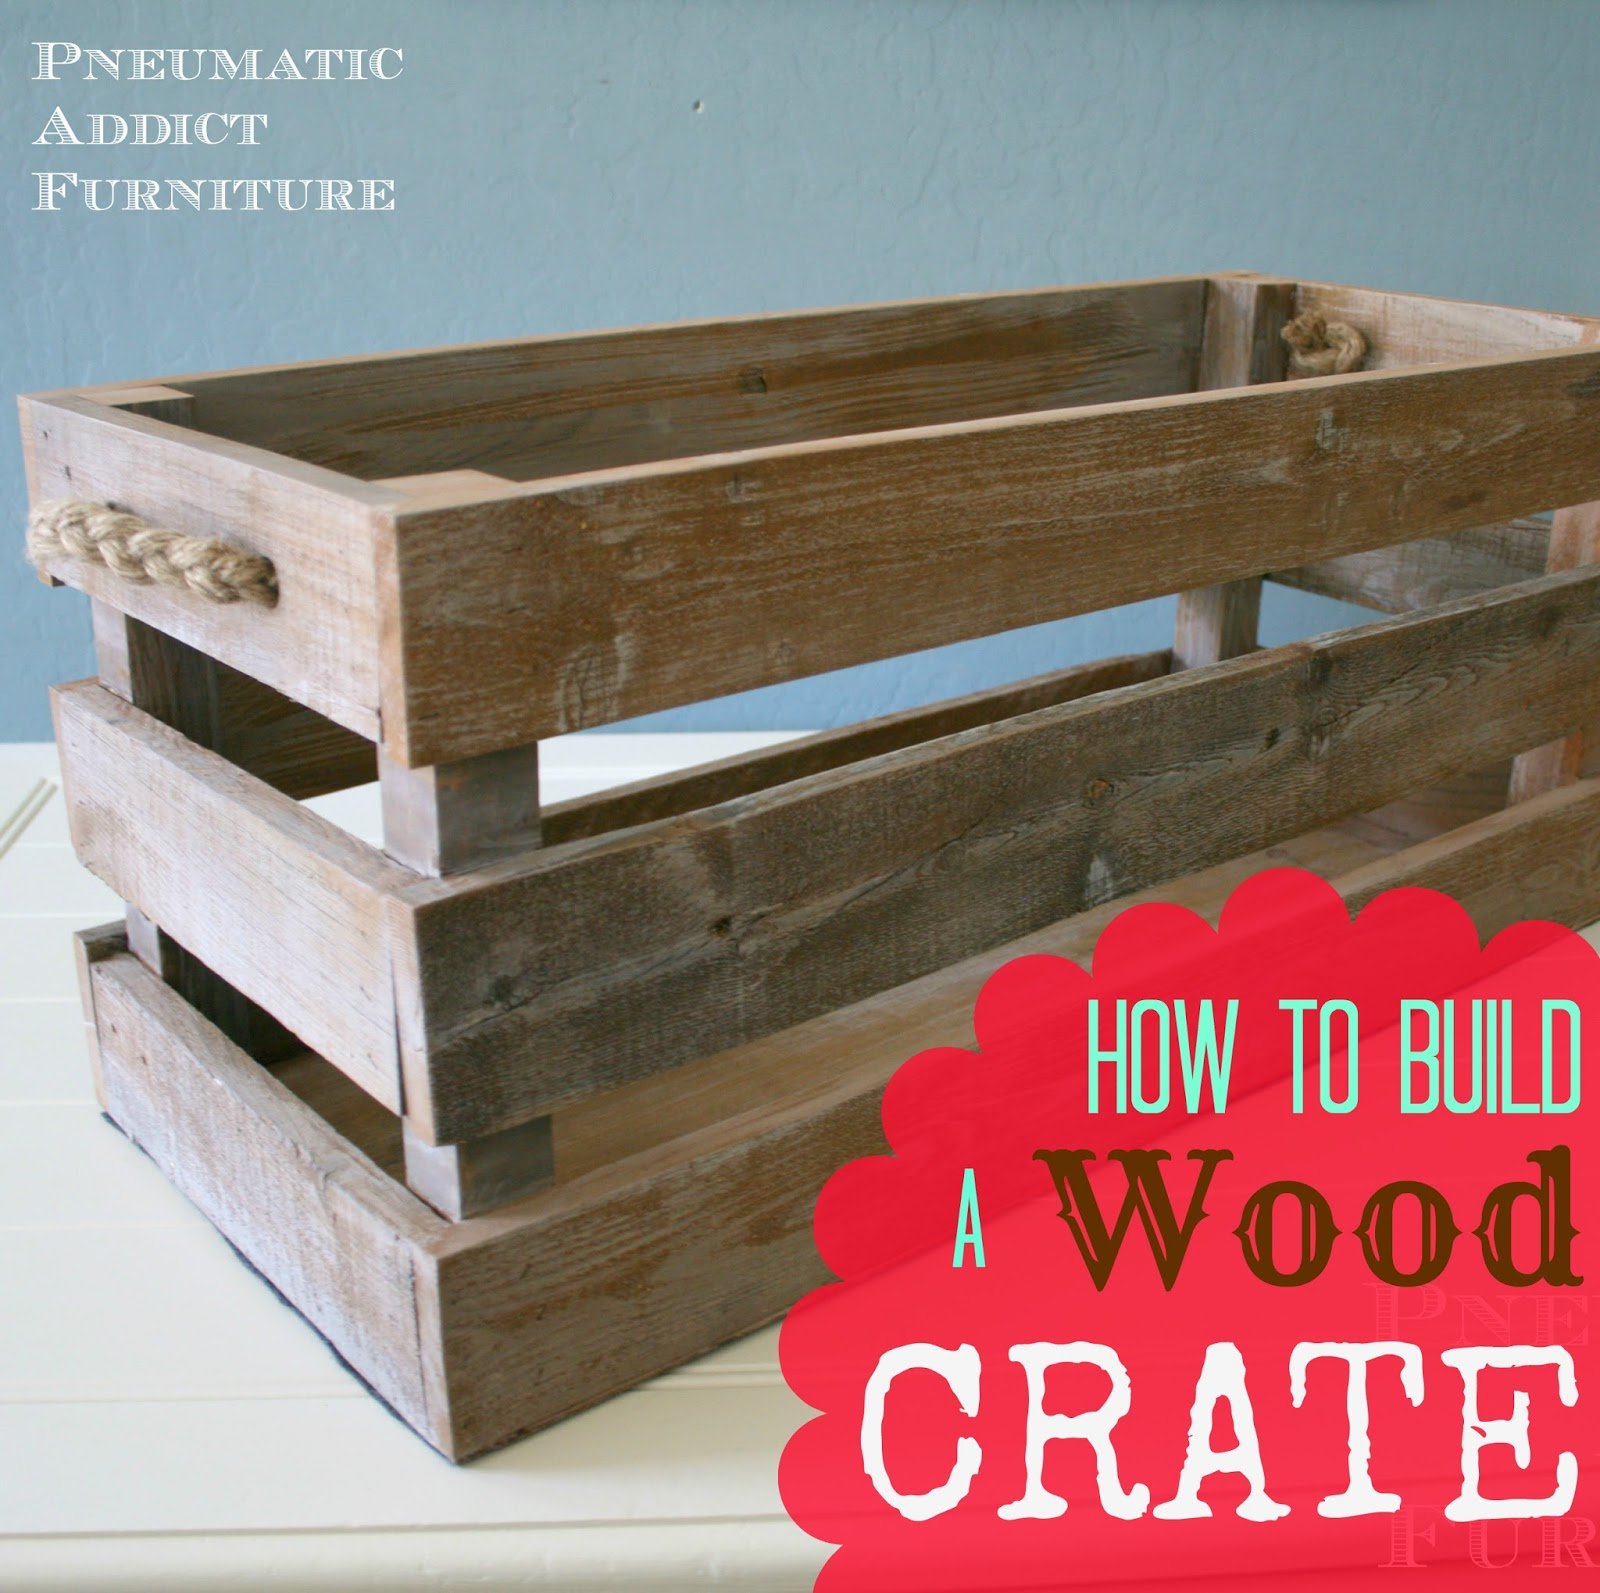 how to build a wood crate pneumatic